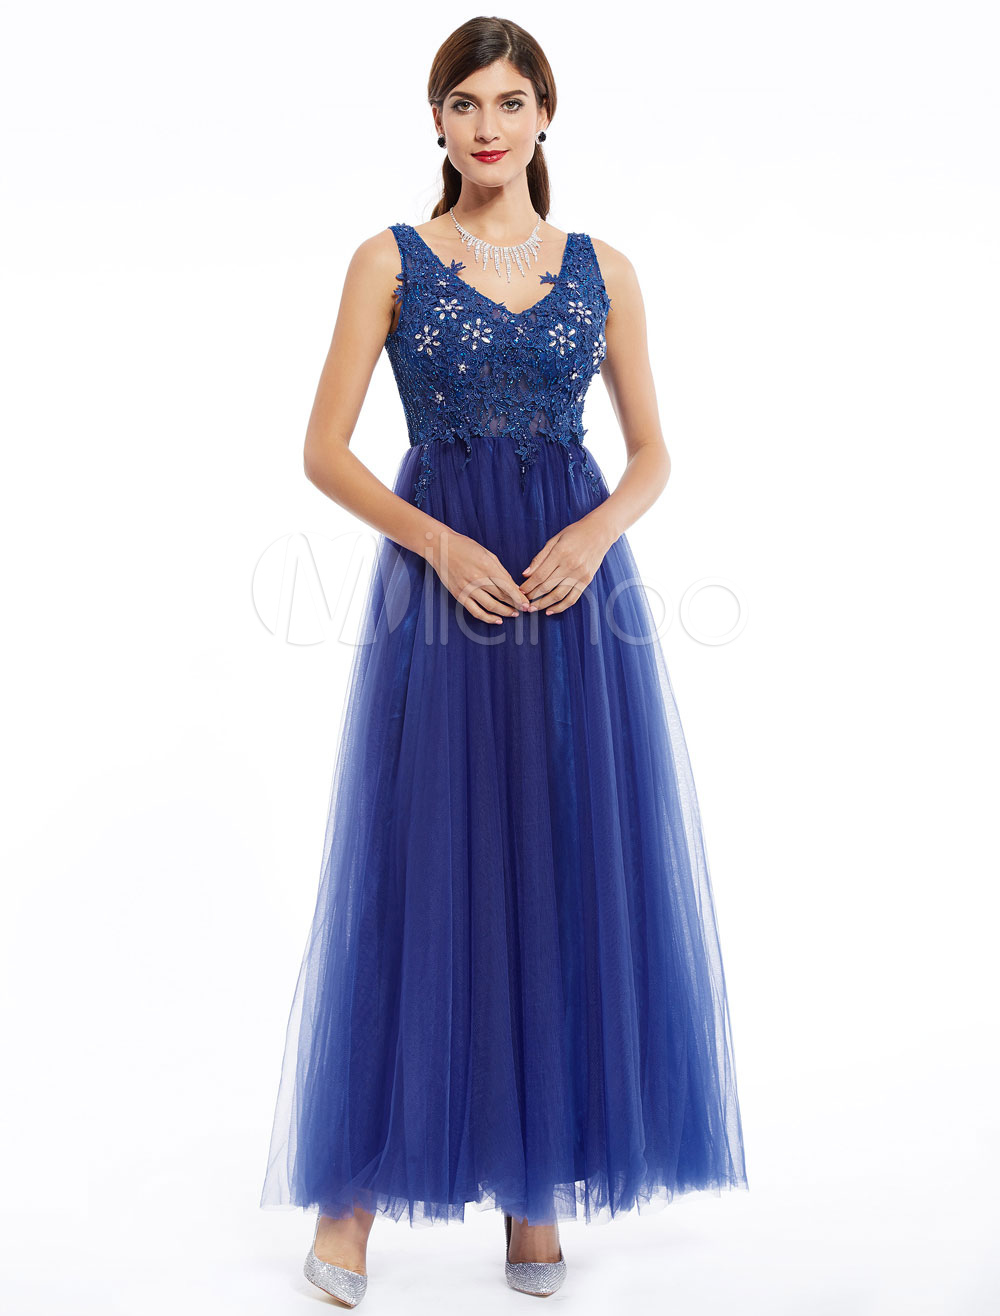 Prom Dresses Long Lace Applique Beading Tulle V Neck Ankle Length Formal Party Dress